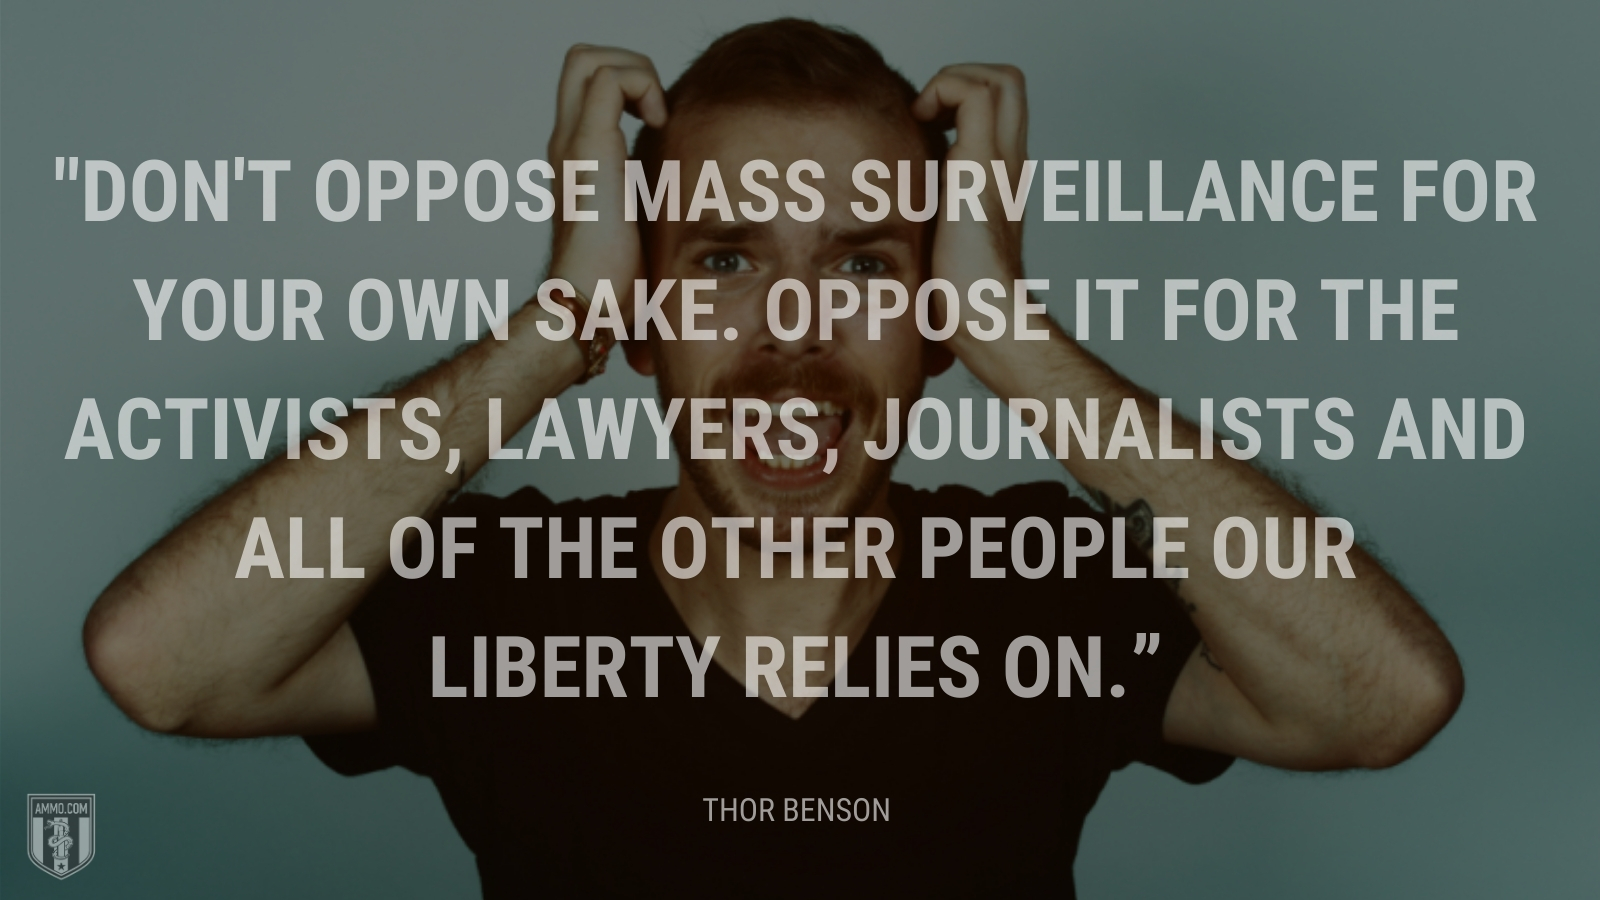 """""""Don't oppose mass surveillance for your own sake. Oppose it for the activists, lawyers, journalists and all of the other people our liberty relies on."""" - Thor Benson"""